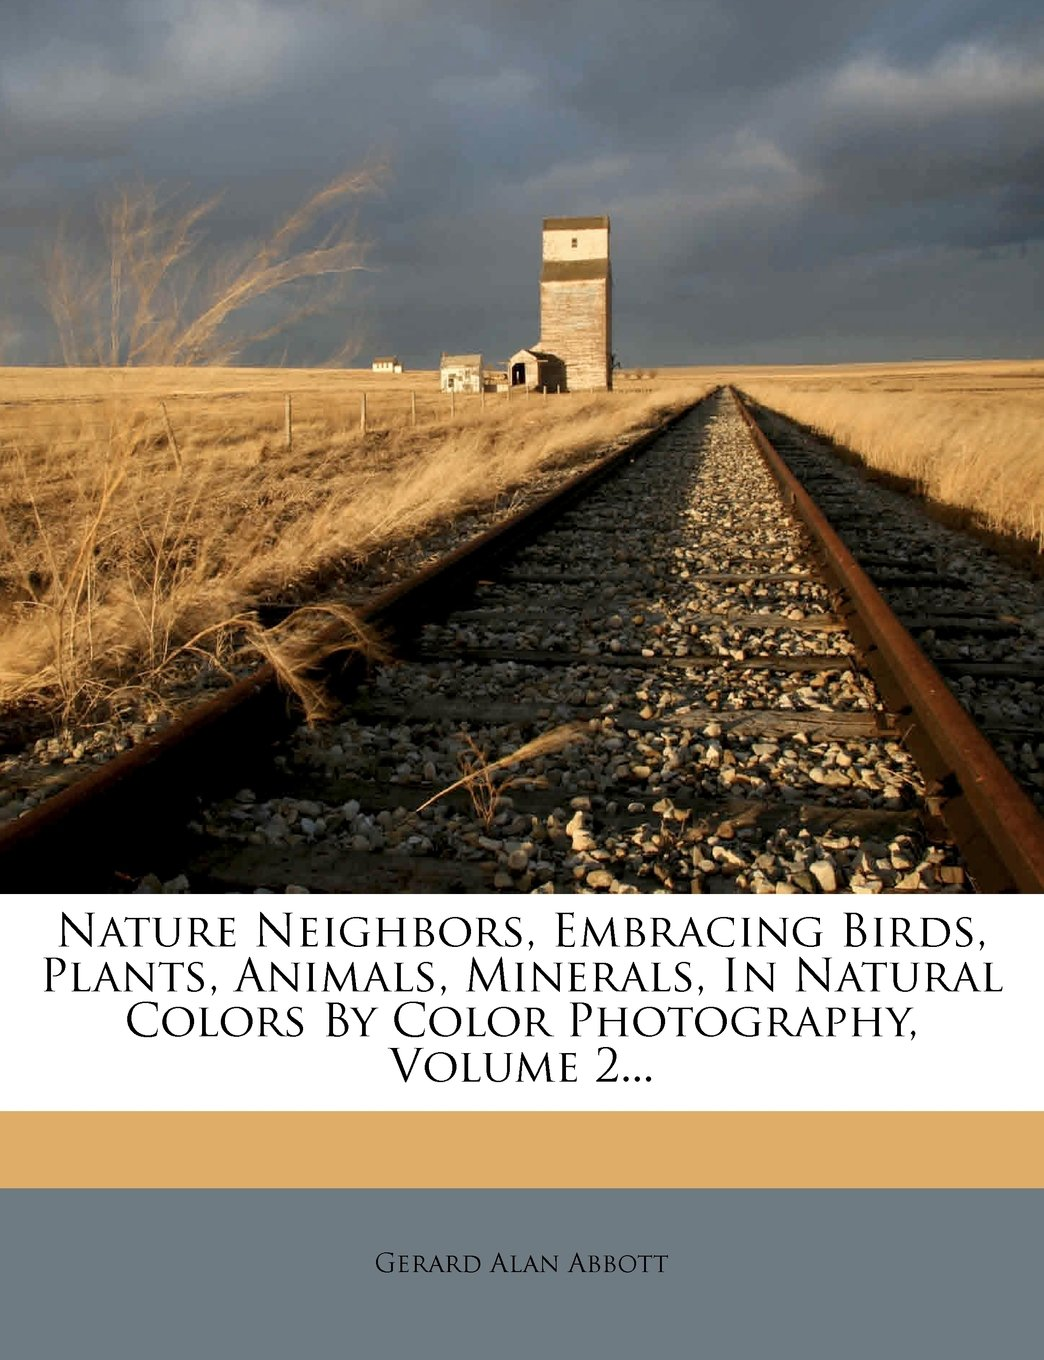 Nature Neighbors, Embracing Birds, Plants, Animals, Minerals, in Natural Colors by Color Photography, Volume 2...